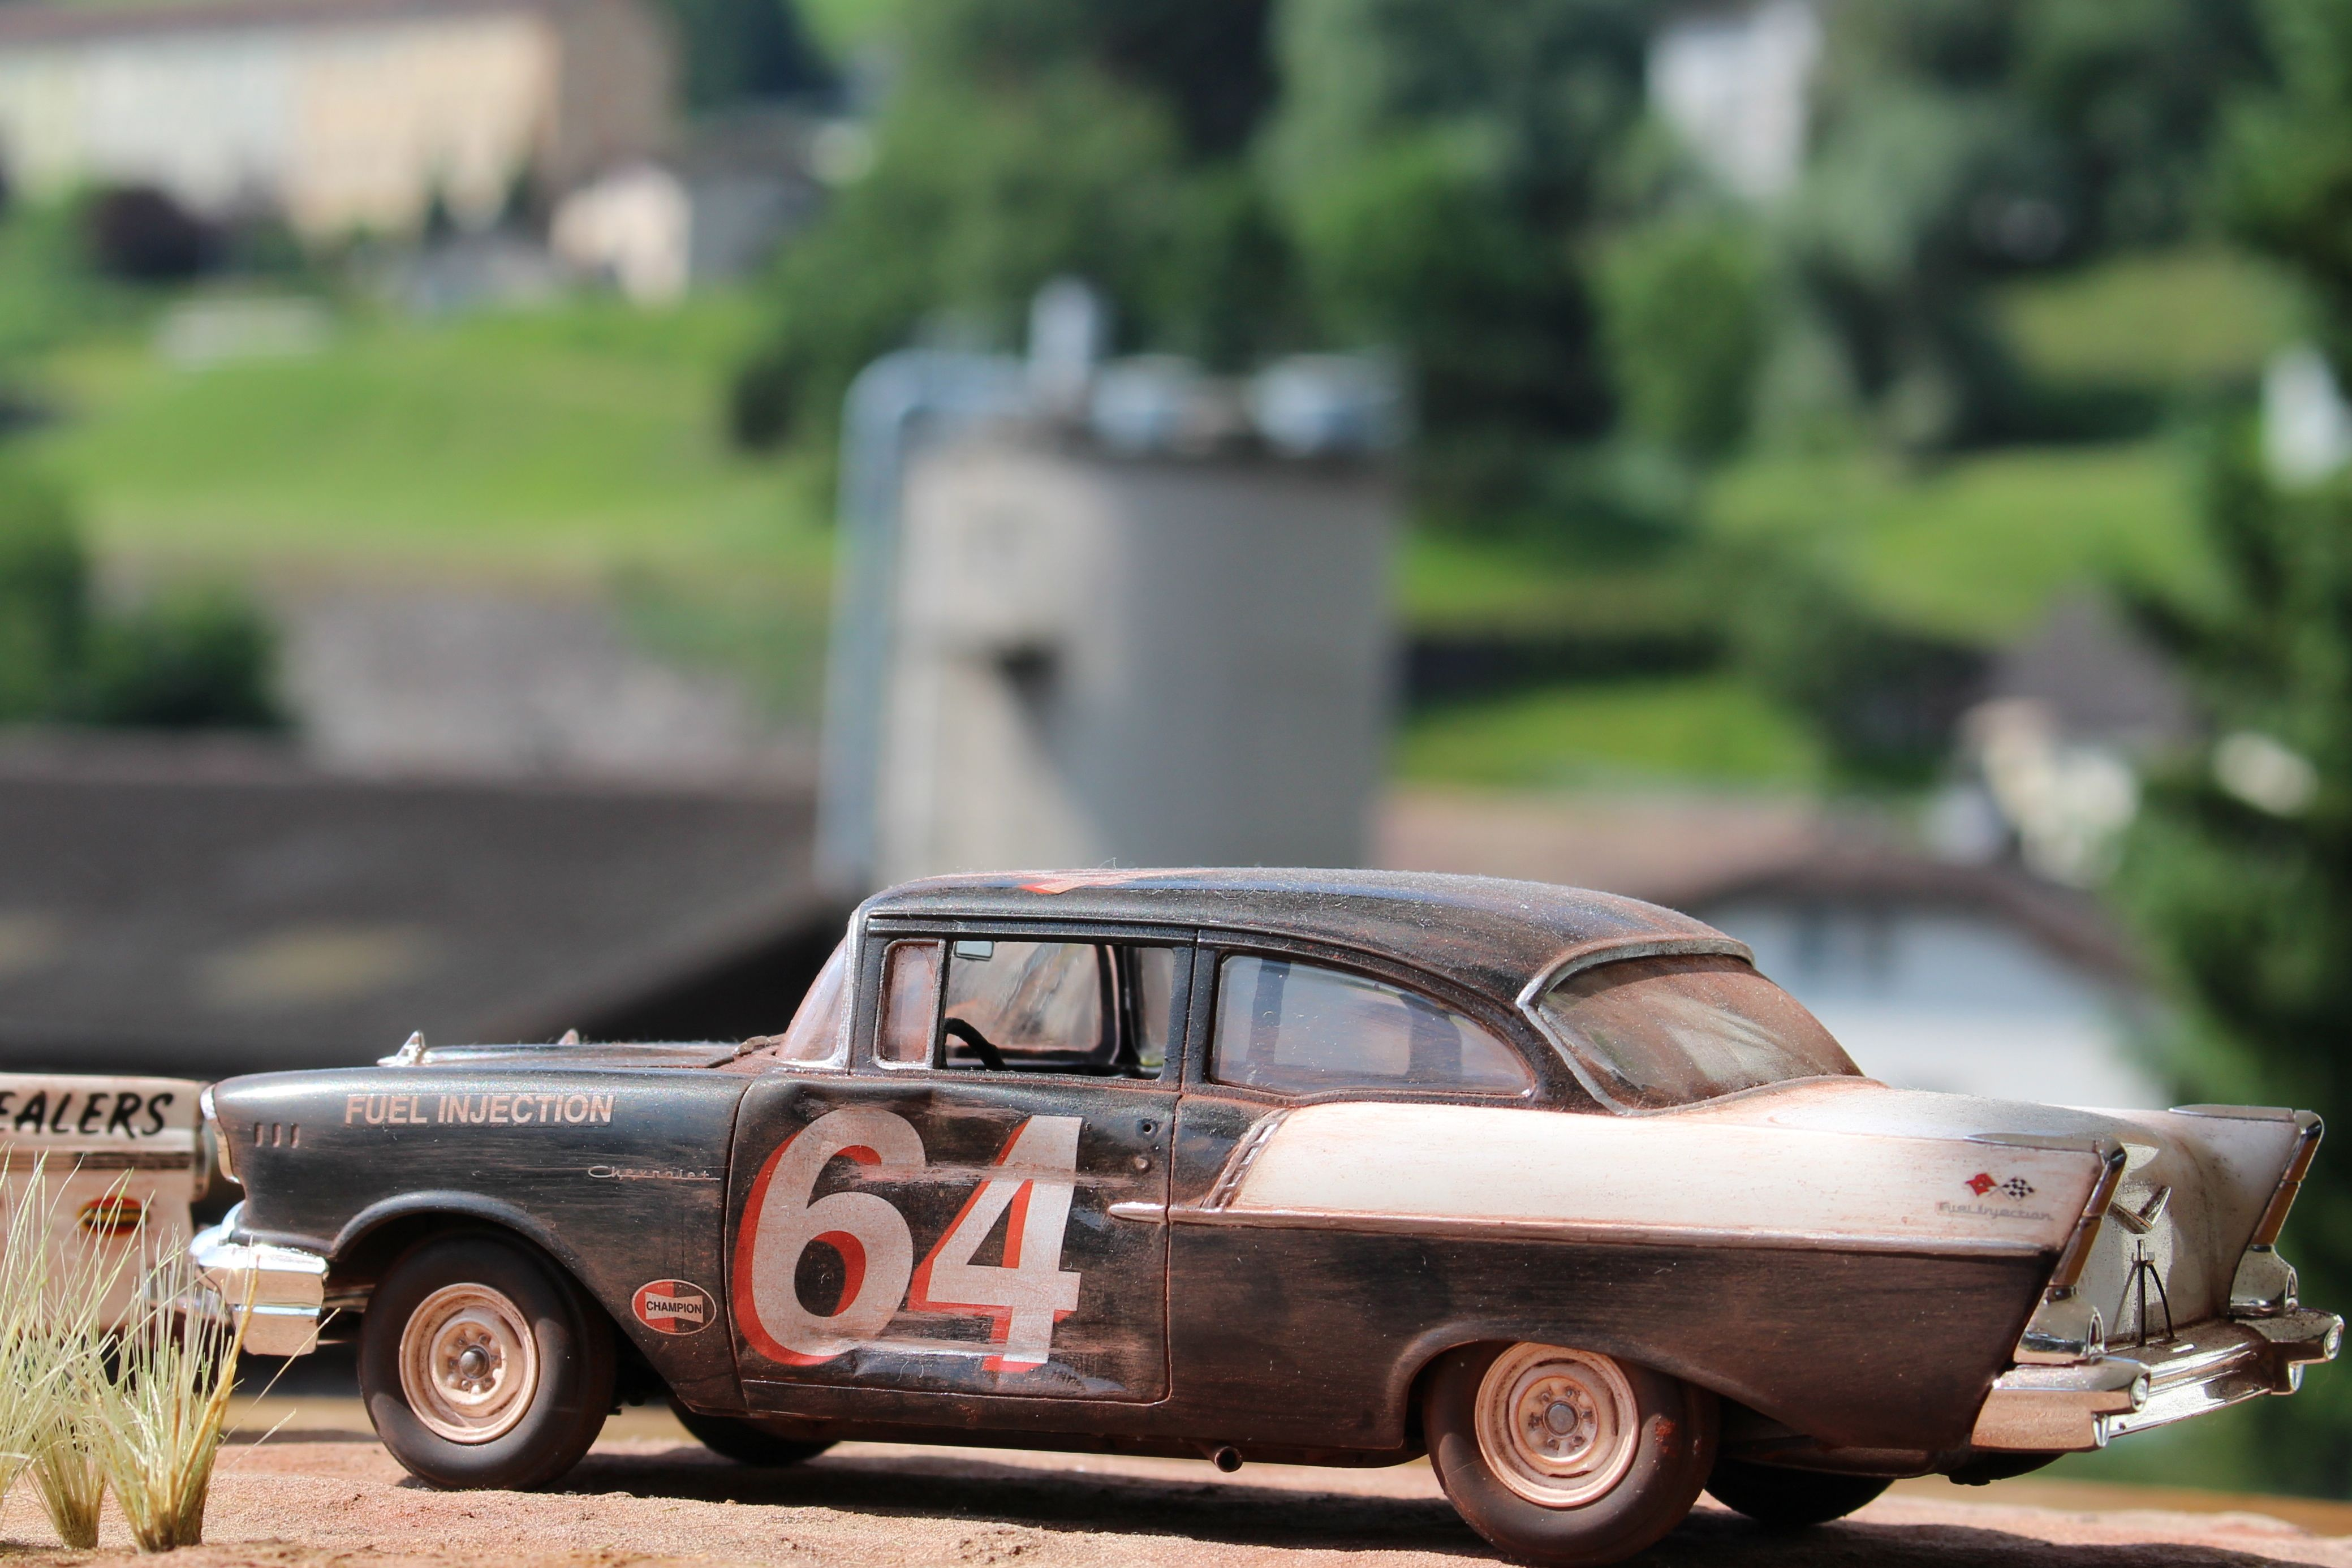 Stock Cars - How to build historic race model cars ...